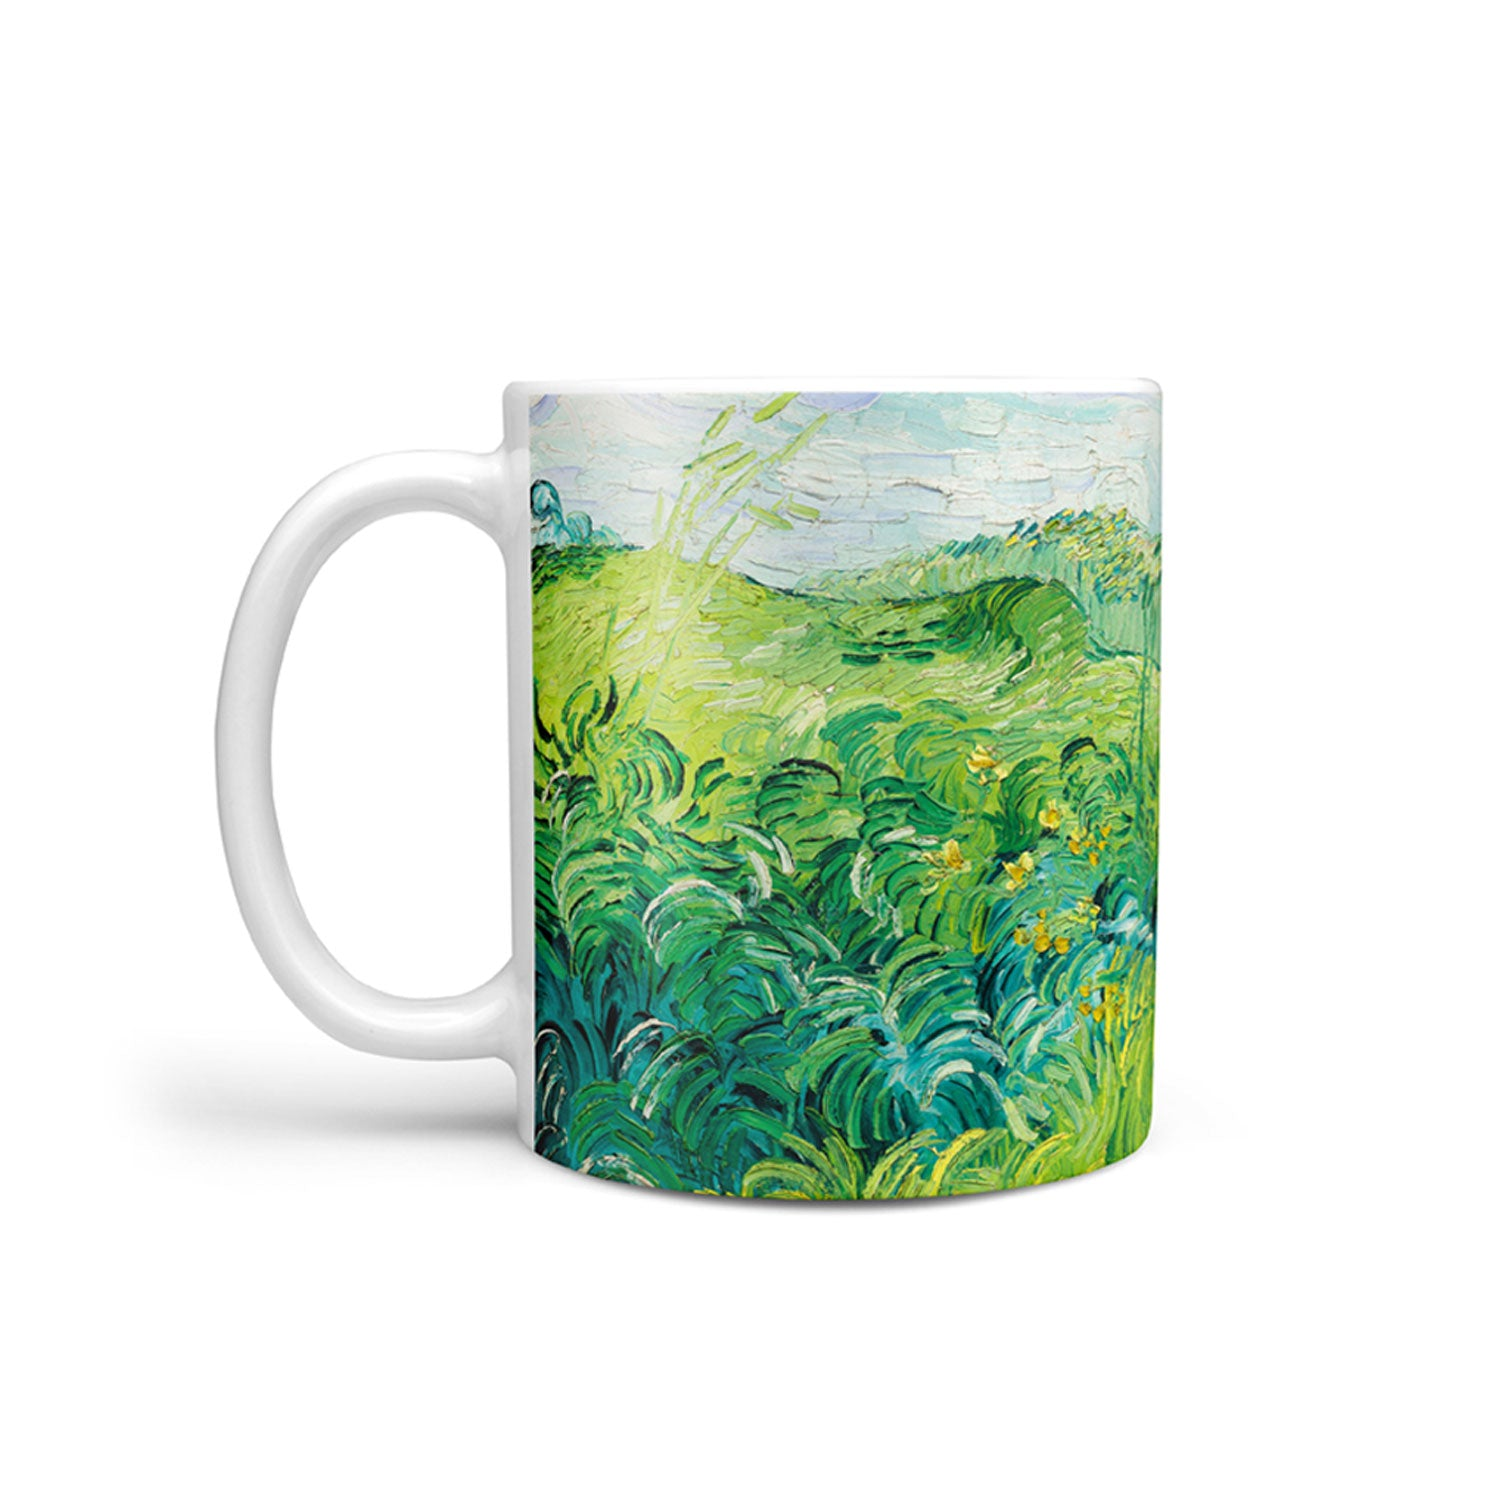 art mug showing Van Gogh wheat field painting